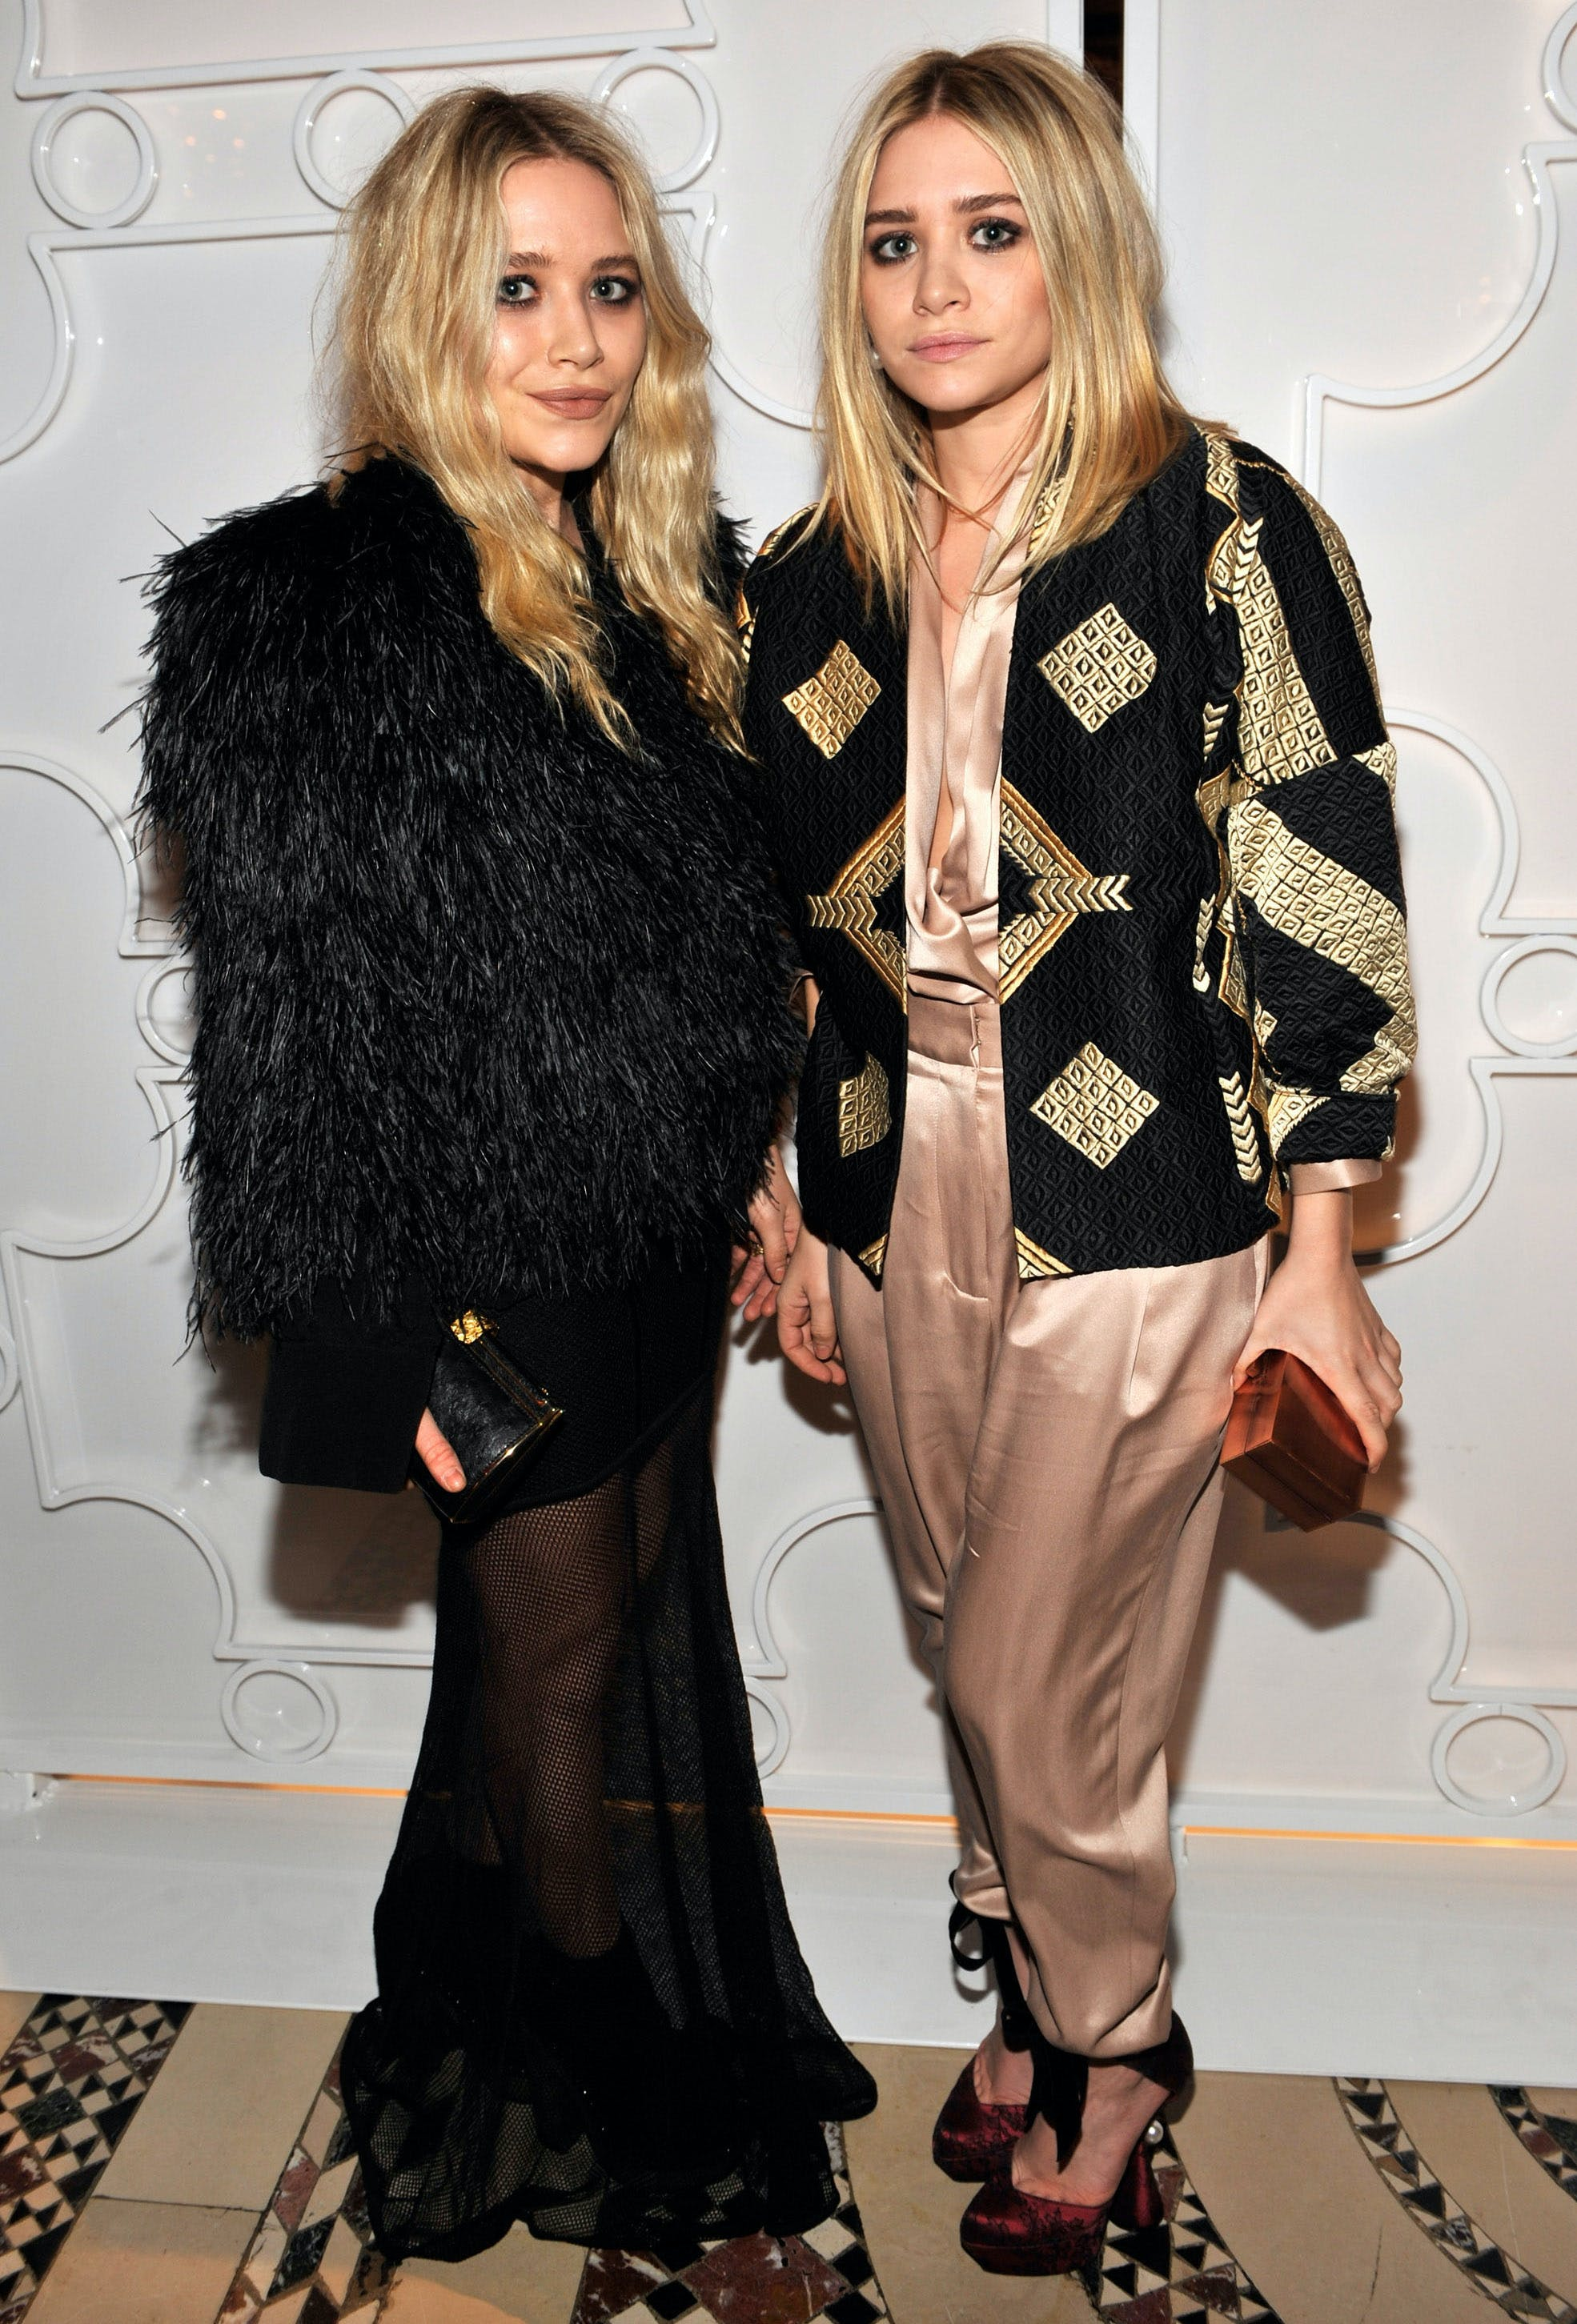 mary kate and ashley olsen wearing awesome jackets in 2010